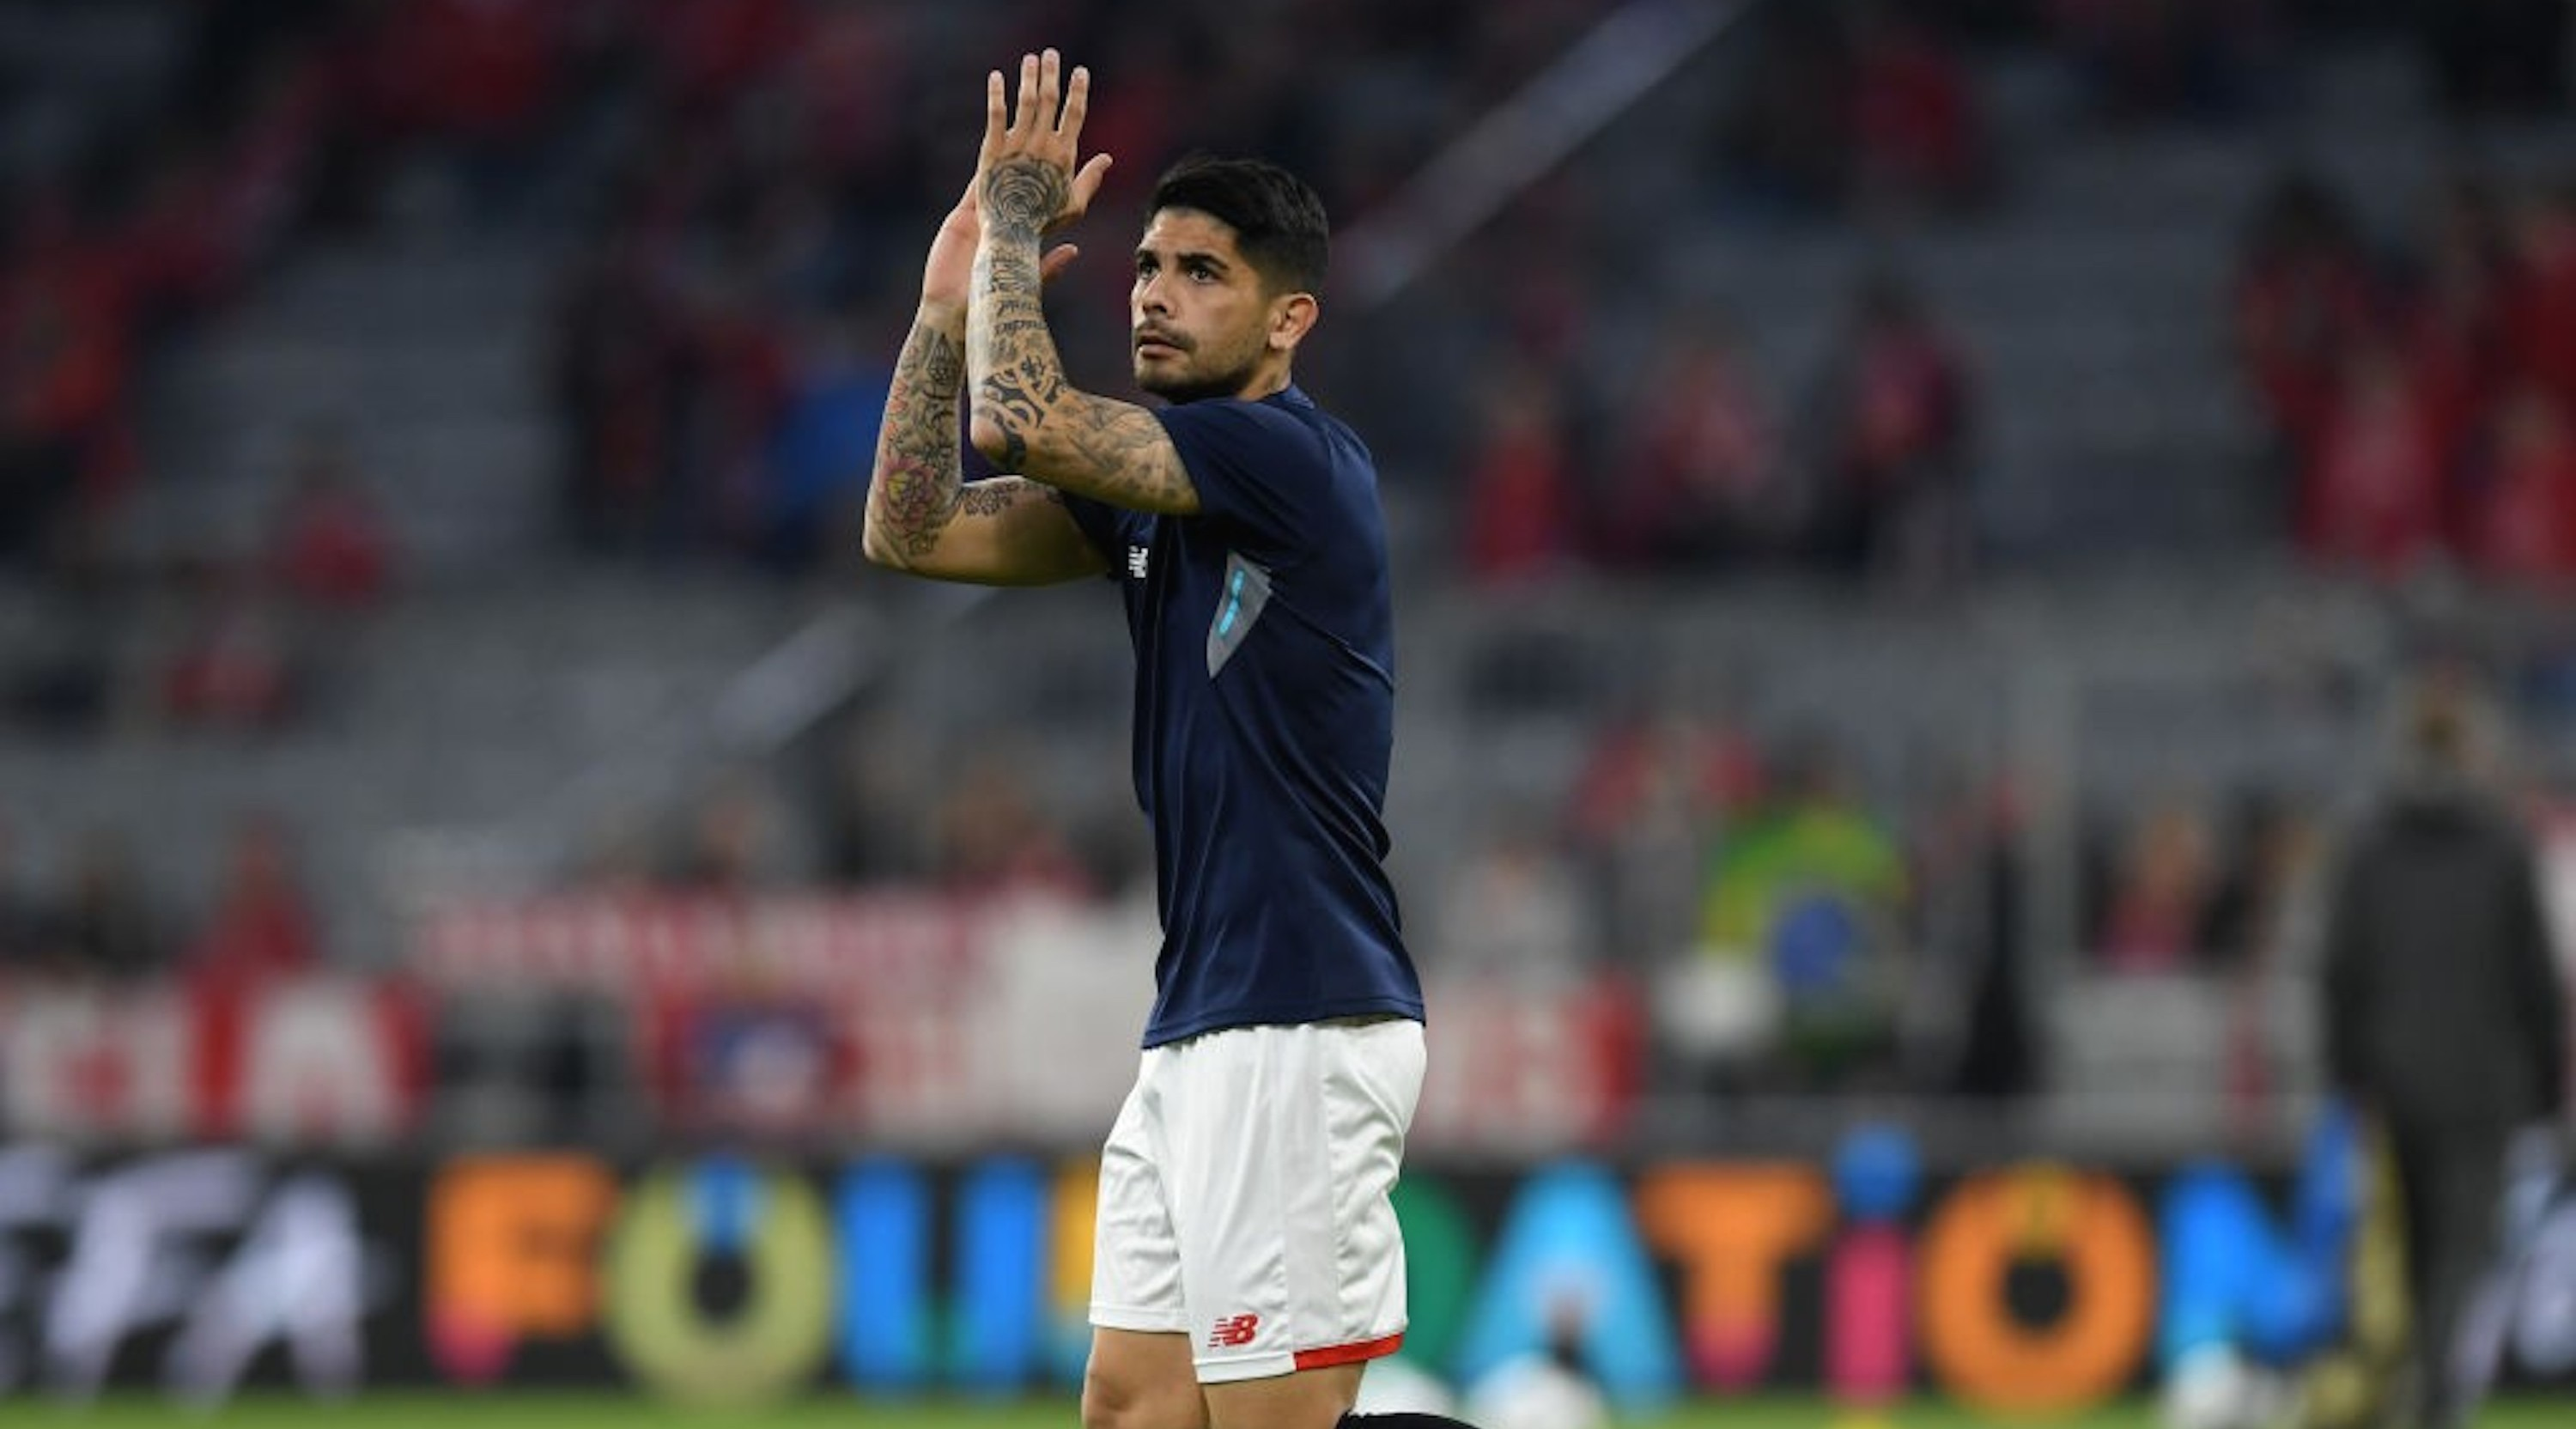 Sevilla's Argentinian midfielder Ever Banega applauds prior to the UEFA Champions League quarter-final second leg football match between FC Bayern Munich and Sevilla FC on April 11, 2018 in Munich, southern Germany. Bayern Munich marched into another Champions League semi-final despite 10-man Sevilla holding them to a goalless draw at home. / AFP PHOTO / Christof STACHE (Photo credit should read CHRISTOF STACHE/AFP/Getty Images)